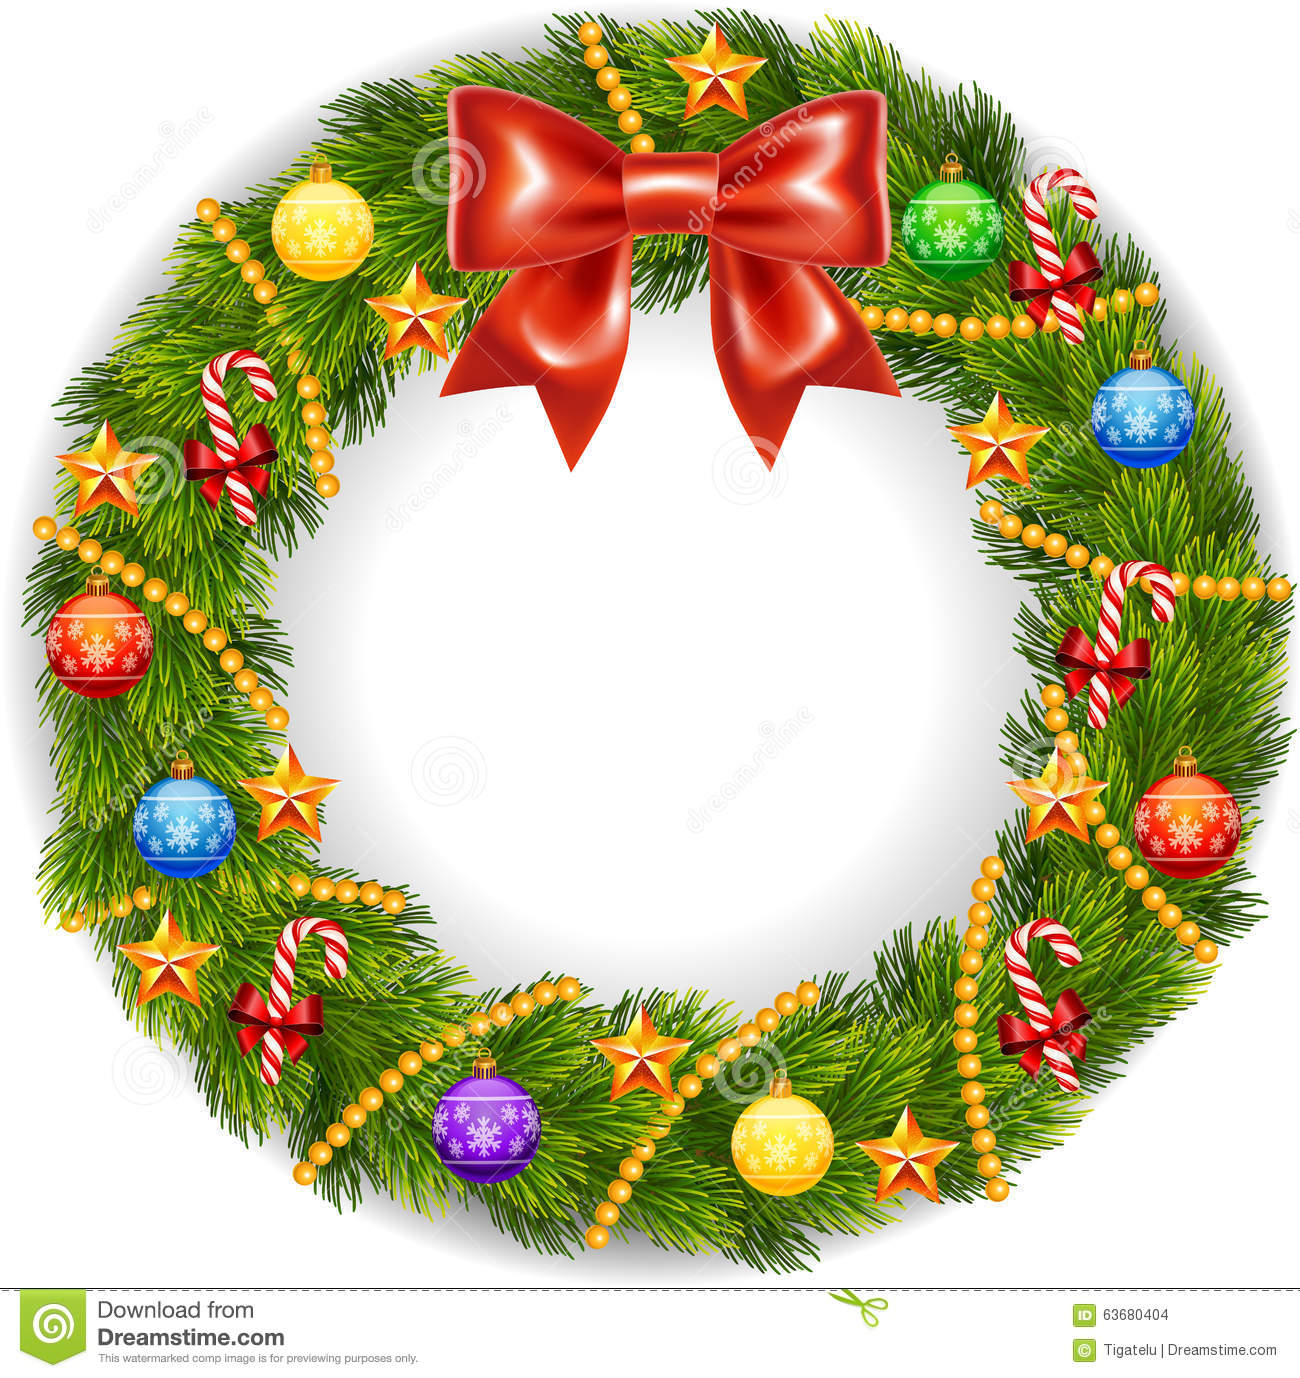 Cartoon Illustration Of Christmas Wreath With Ribbons Balls And Bow